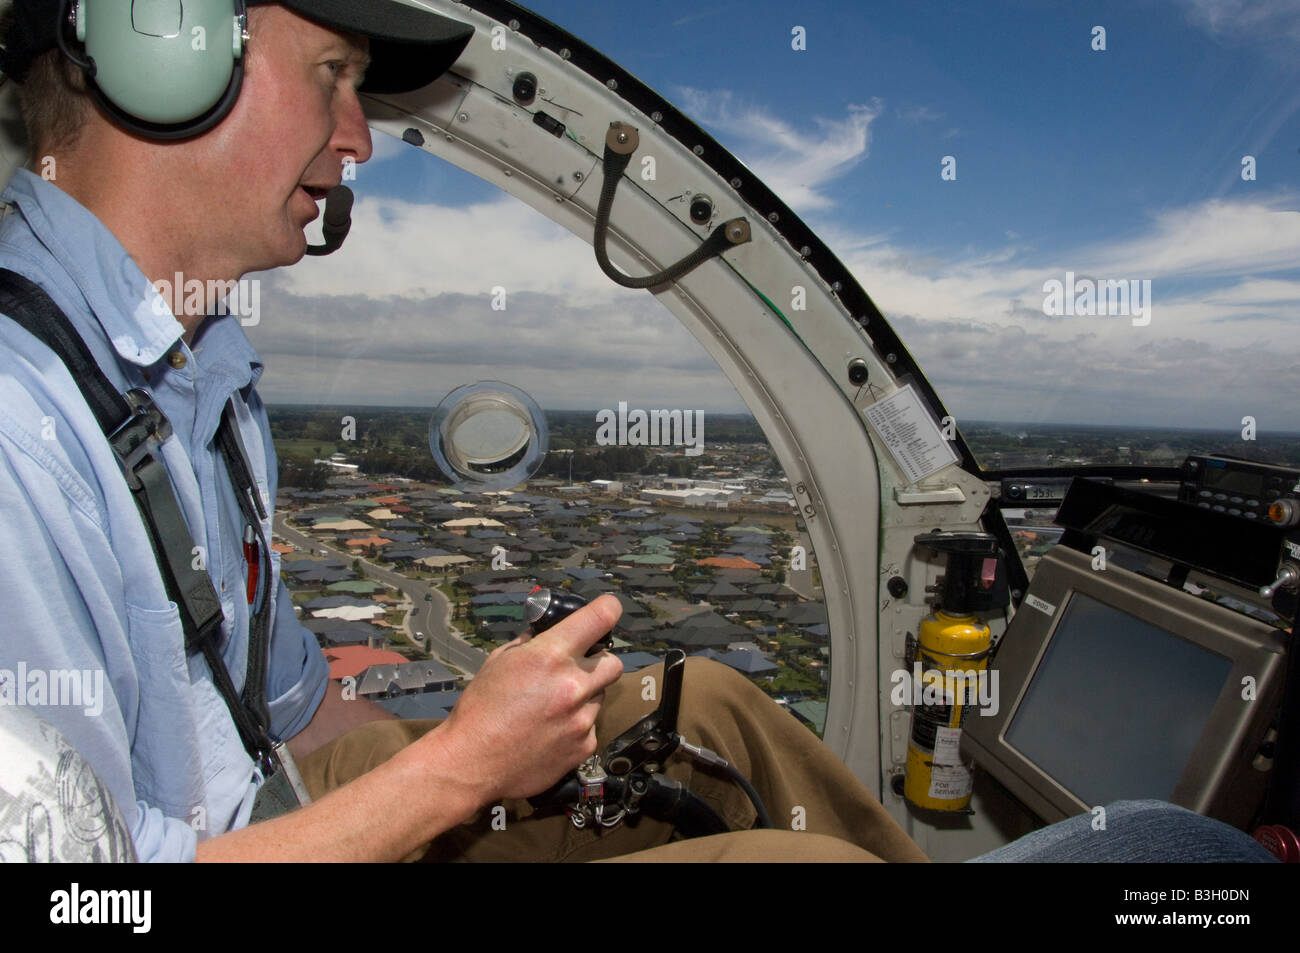 Pilot sitting in cockpit - Stock Image